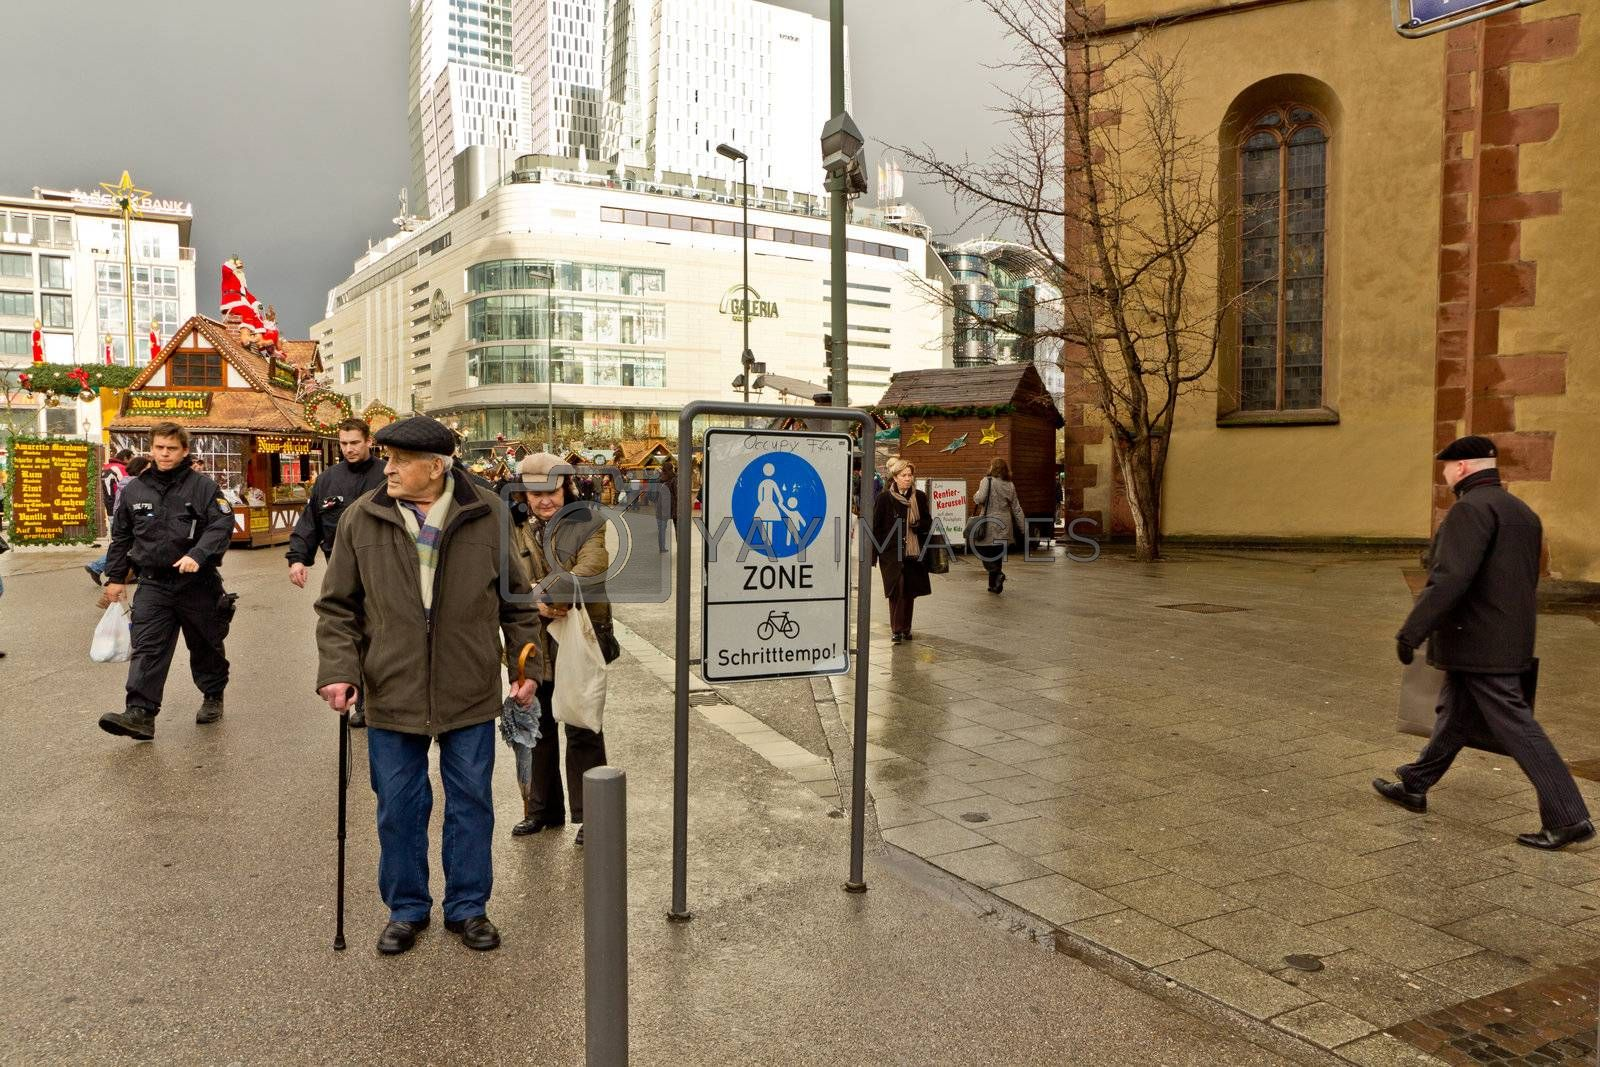 People on the streets of downtown Frankfurt Germany